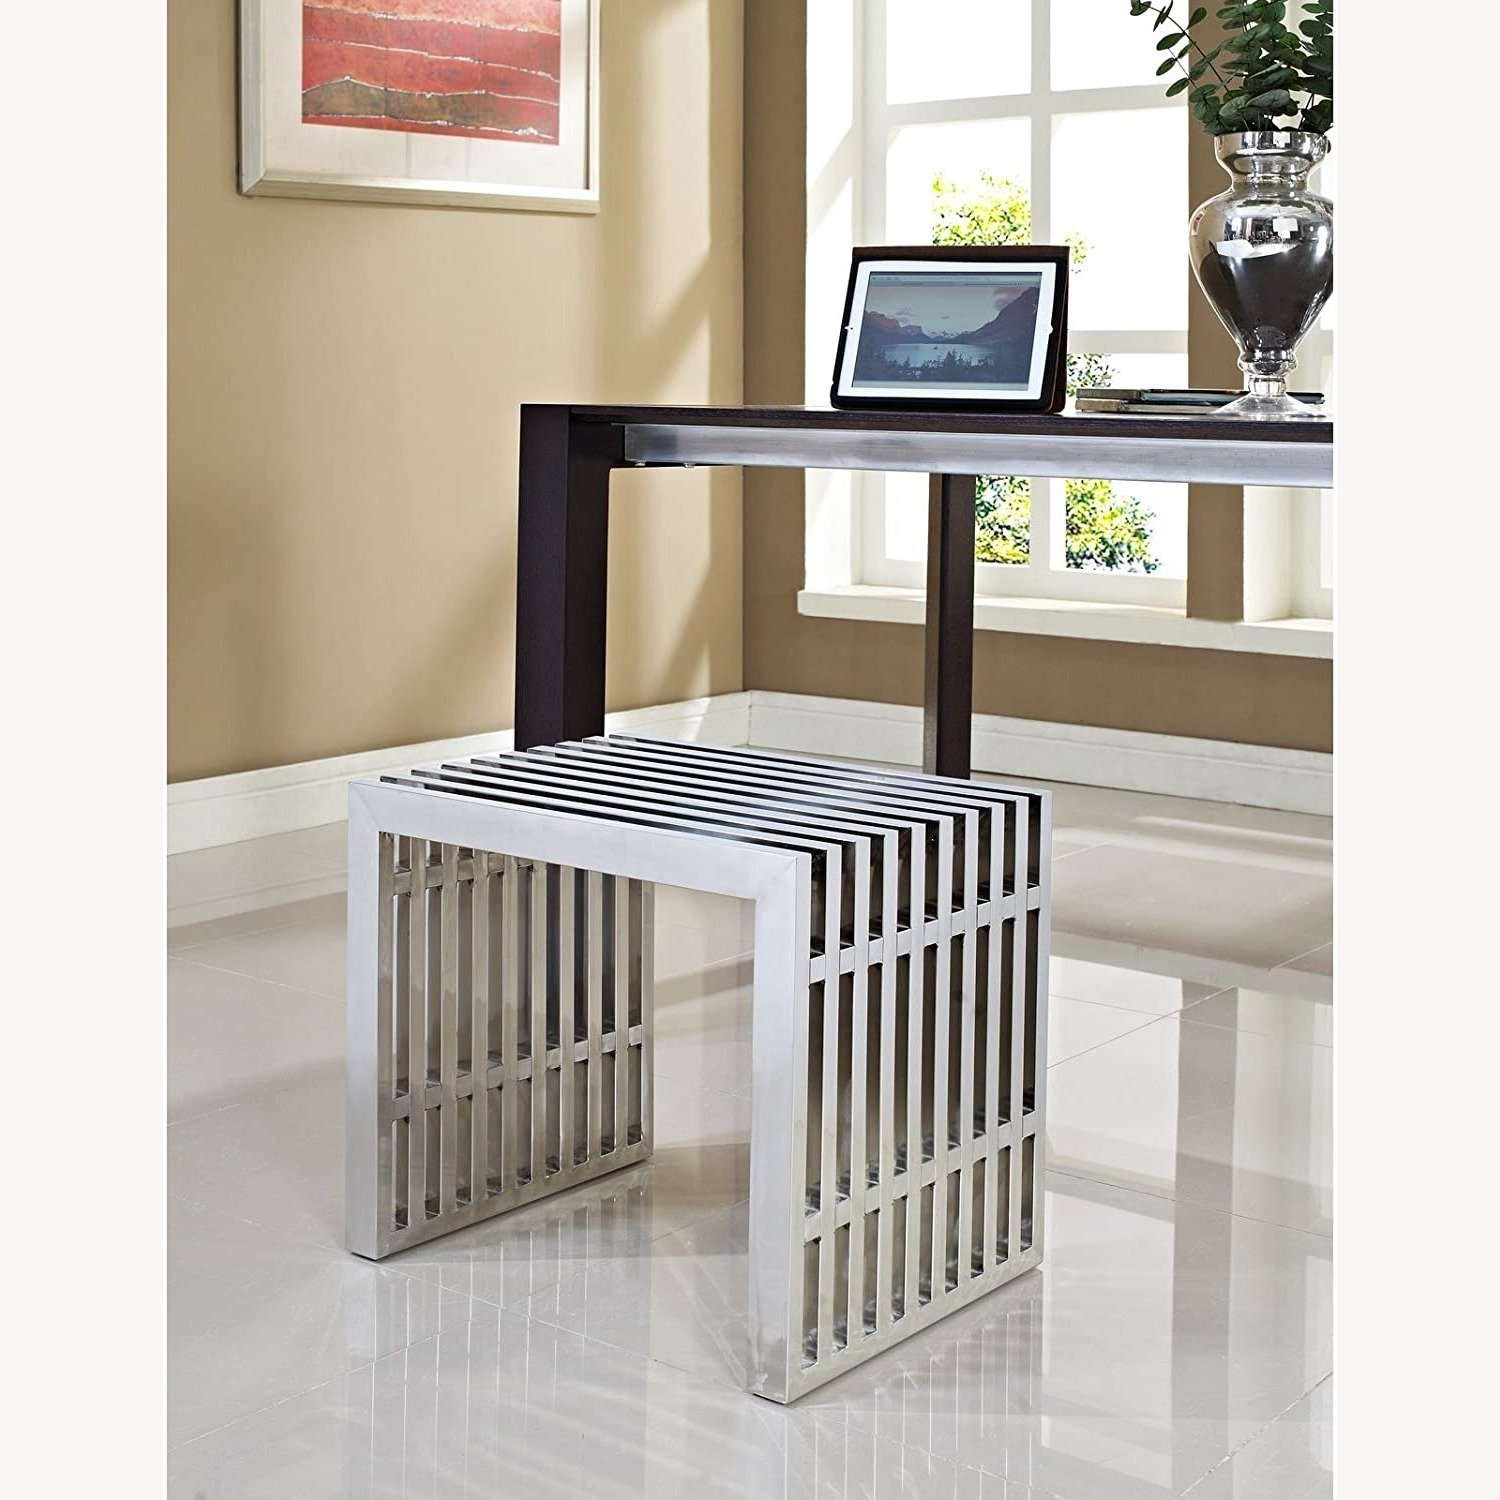 Bench In Silver Small Stainless Steel Finish - image-3